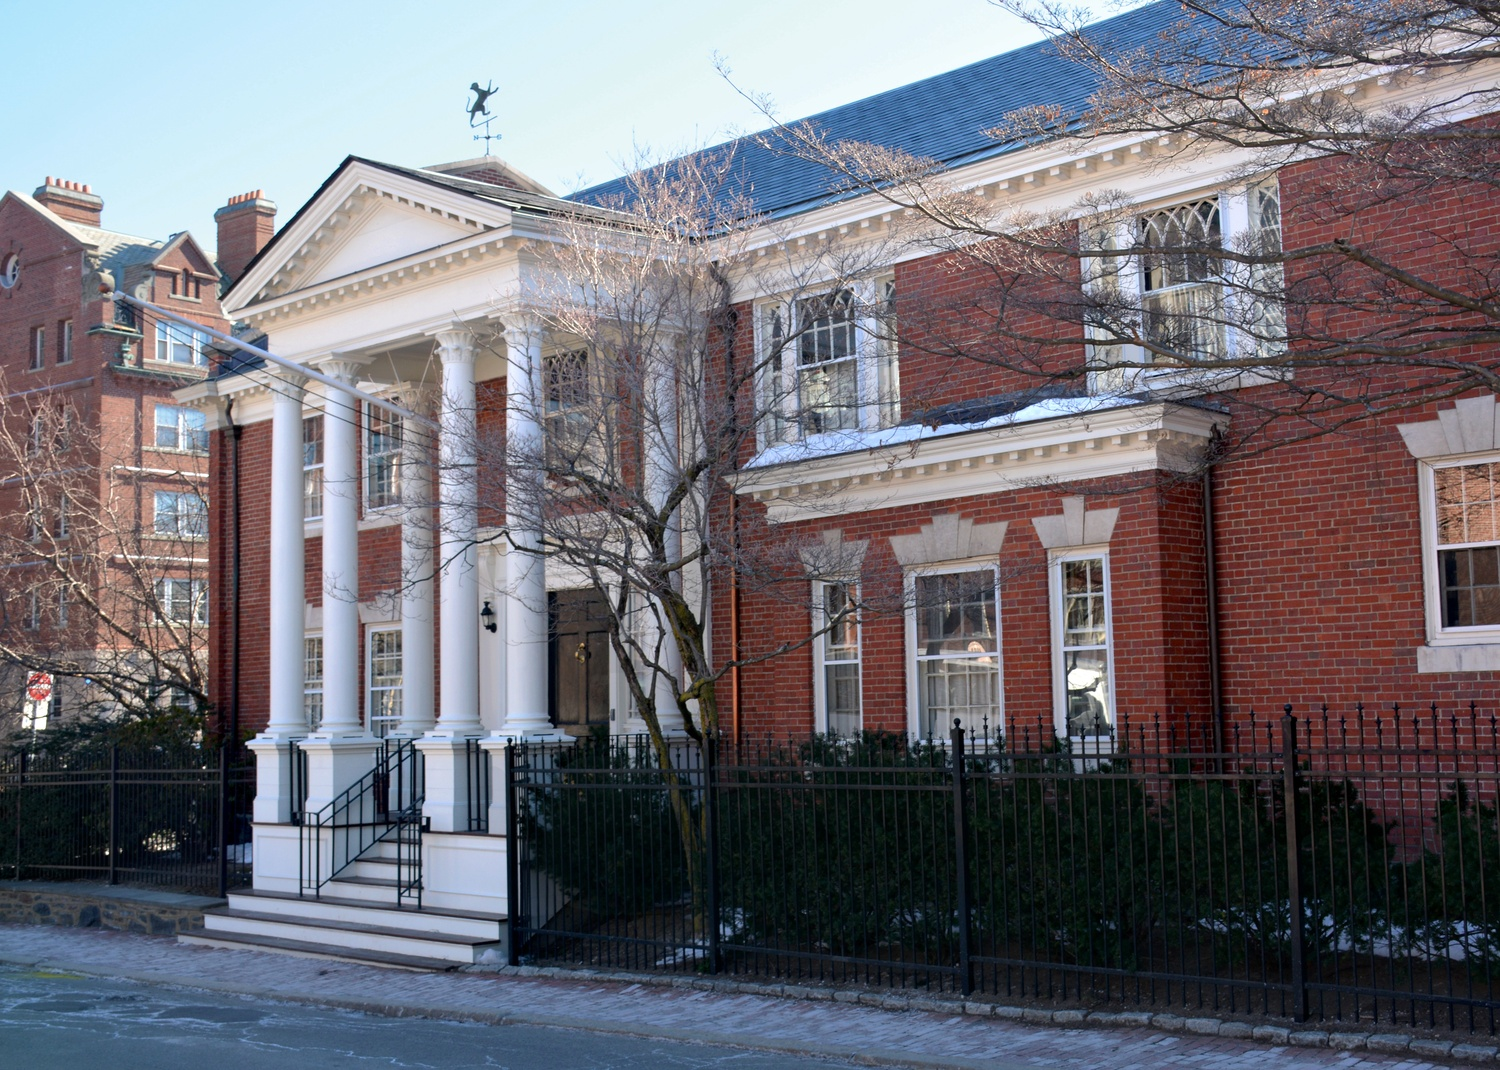 The Fly Club is one of several all-male final clubs at Harvard.